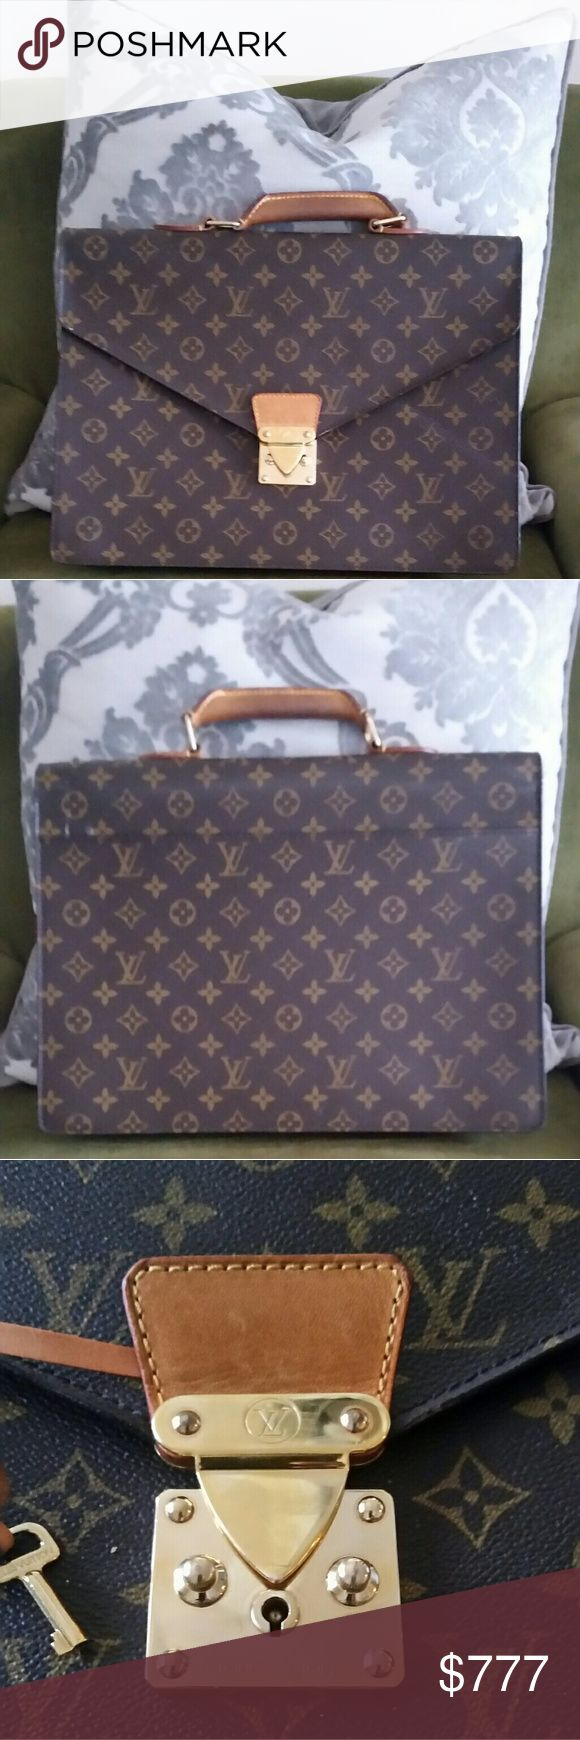 NWOT LV MONOGRAM BRIEFCASE 100% AUTH Real Louis Vuitton Briefcase. No Damage Can Fit Any Macbook Easily Along With Documents.  Orig $2,900 Asking $799 Price reflects:  No dust bag Louis Vuitton Bags